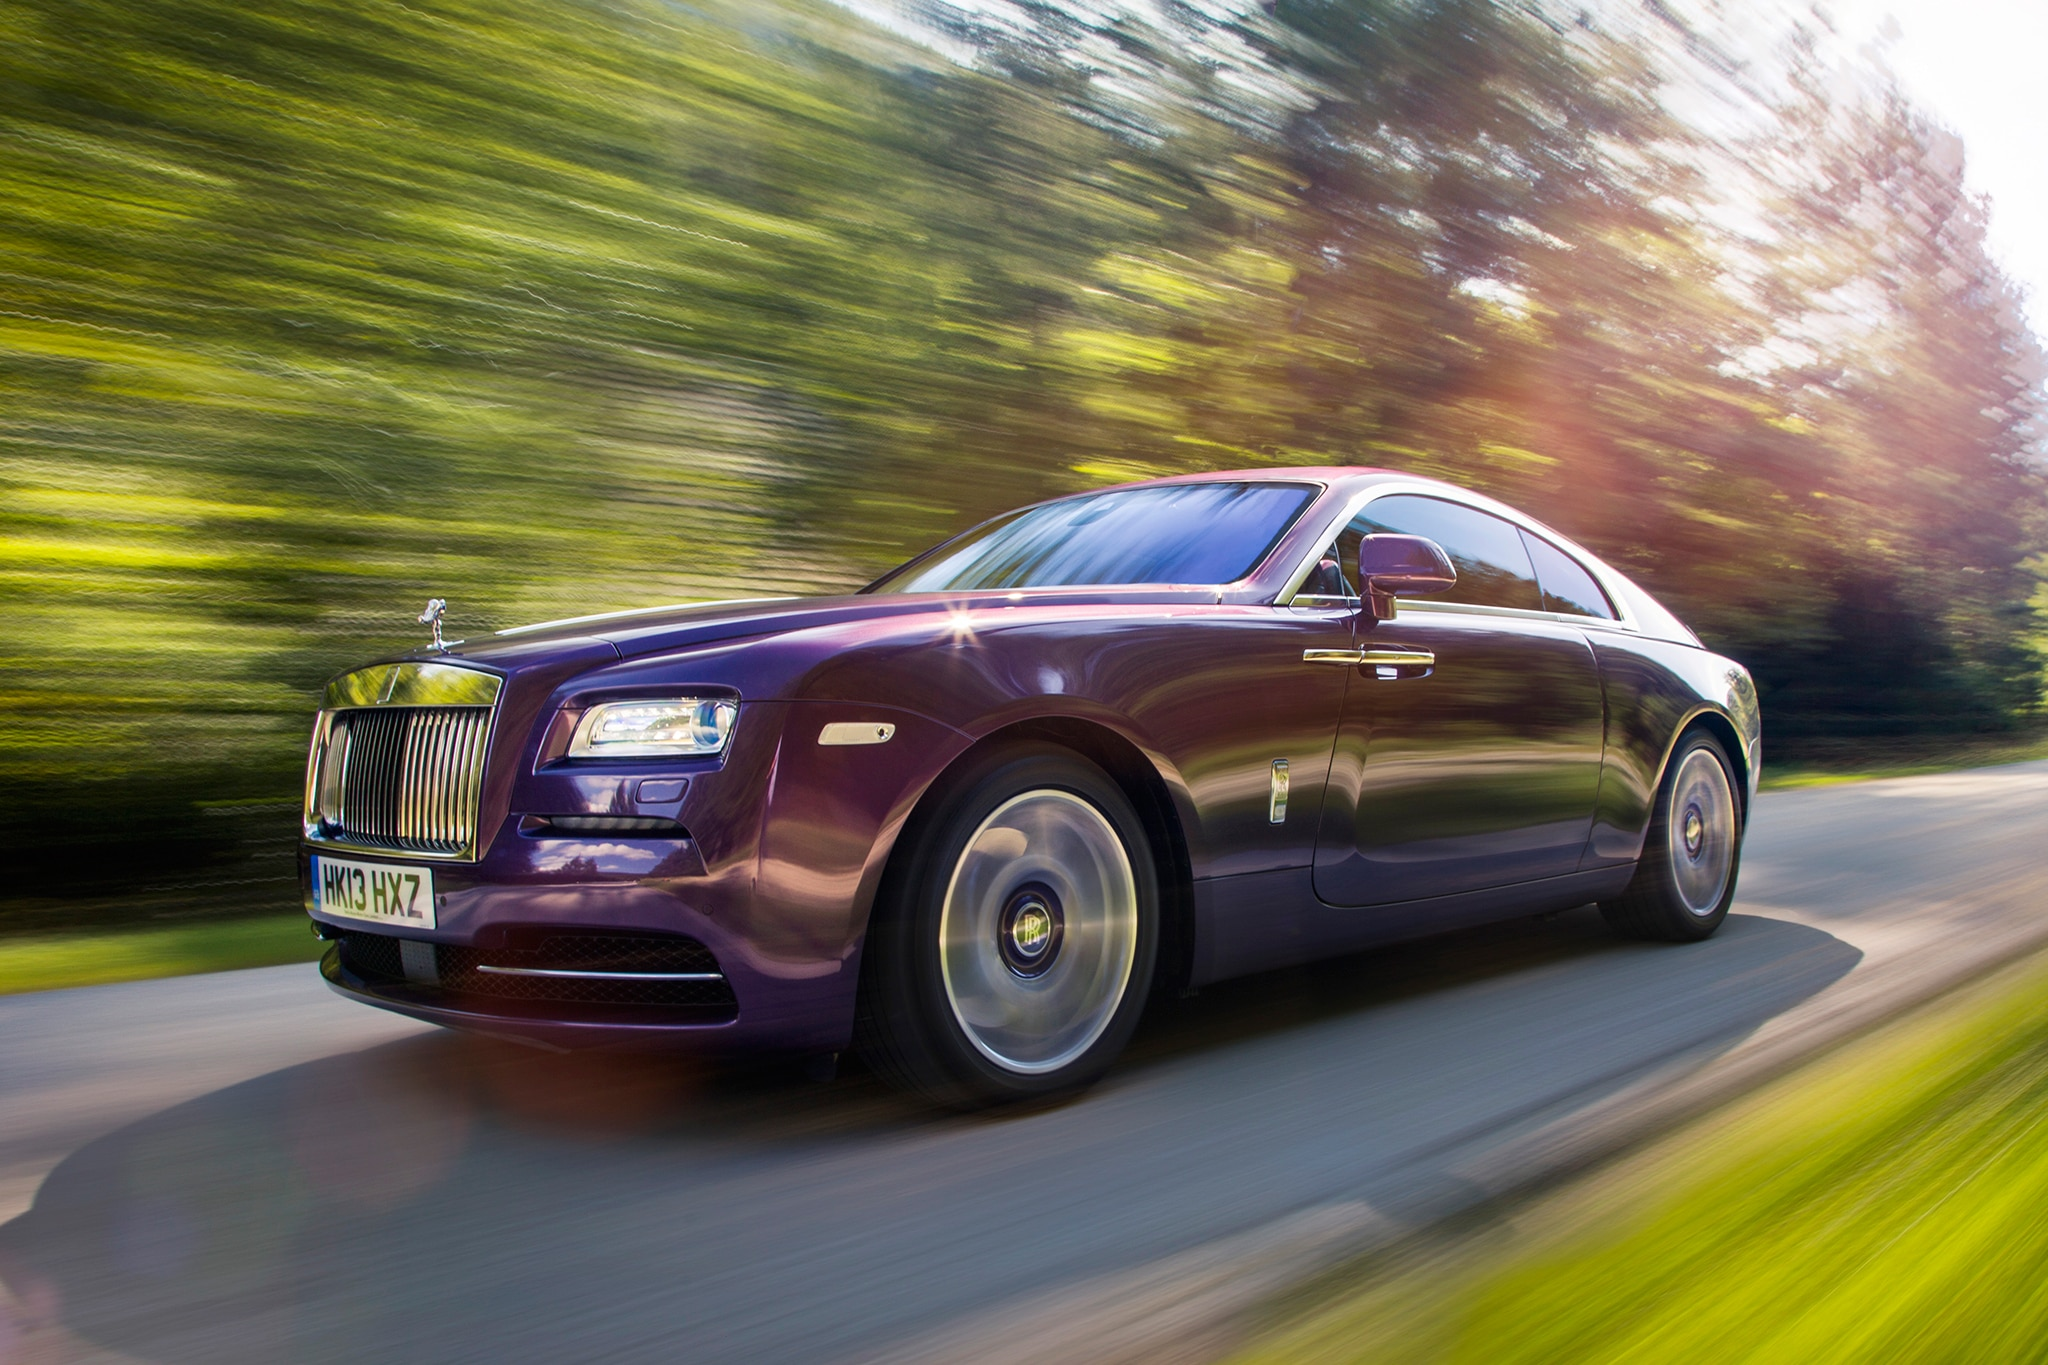 2014 Rolls Royce Wraith Three Quarters View 51